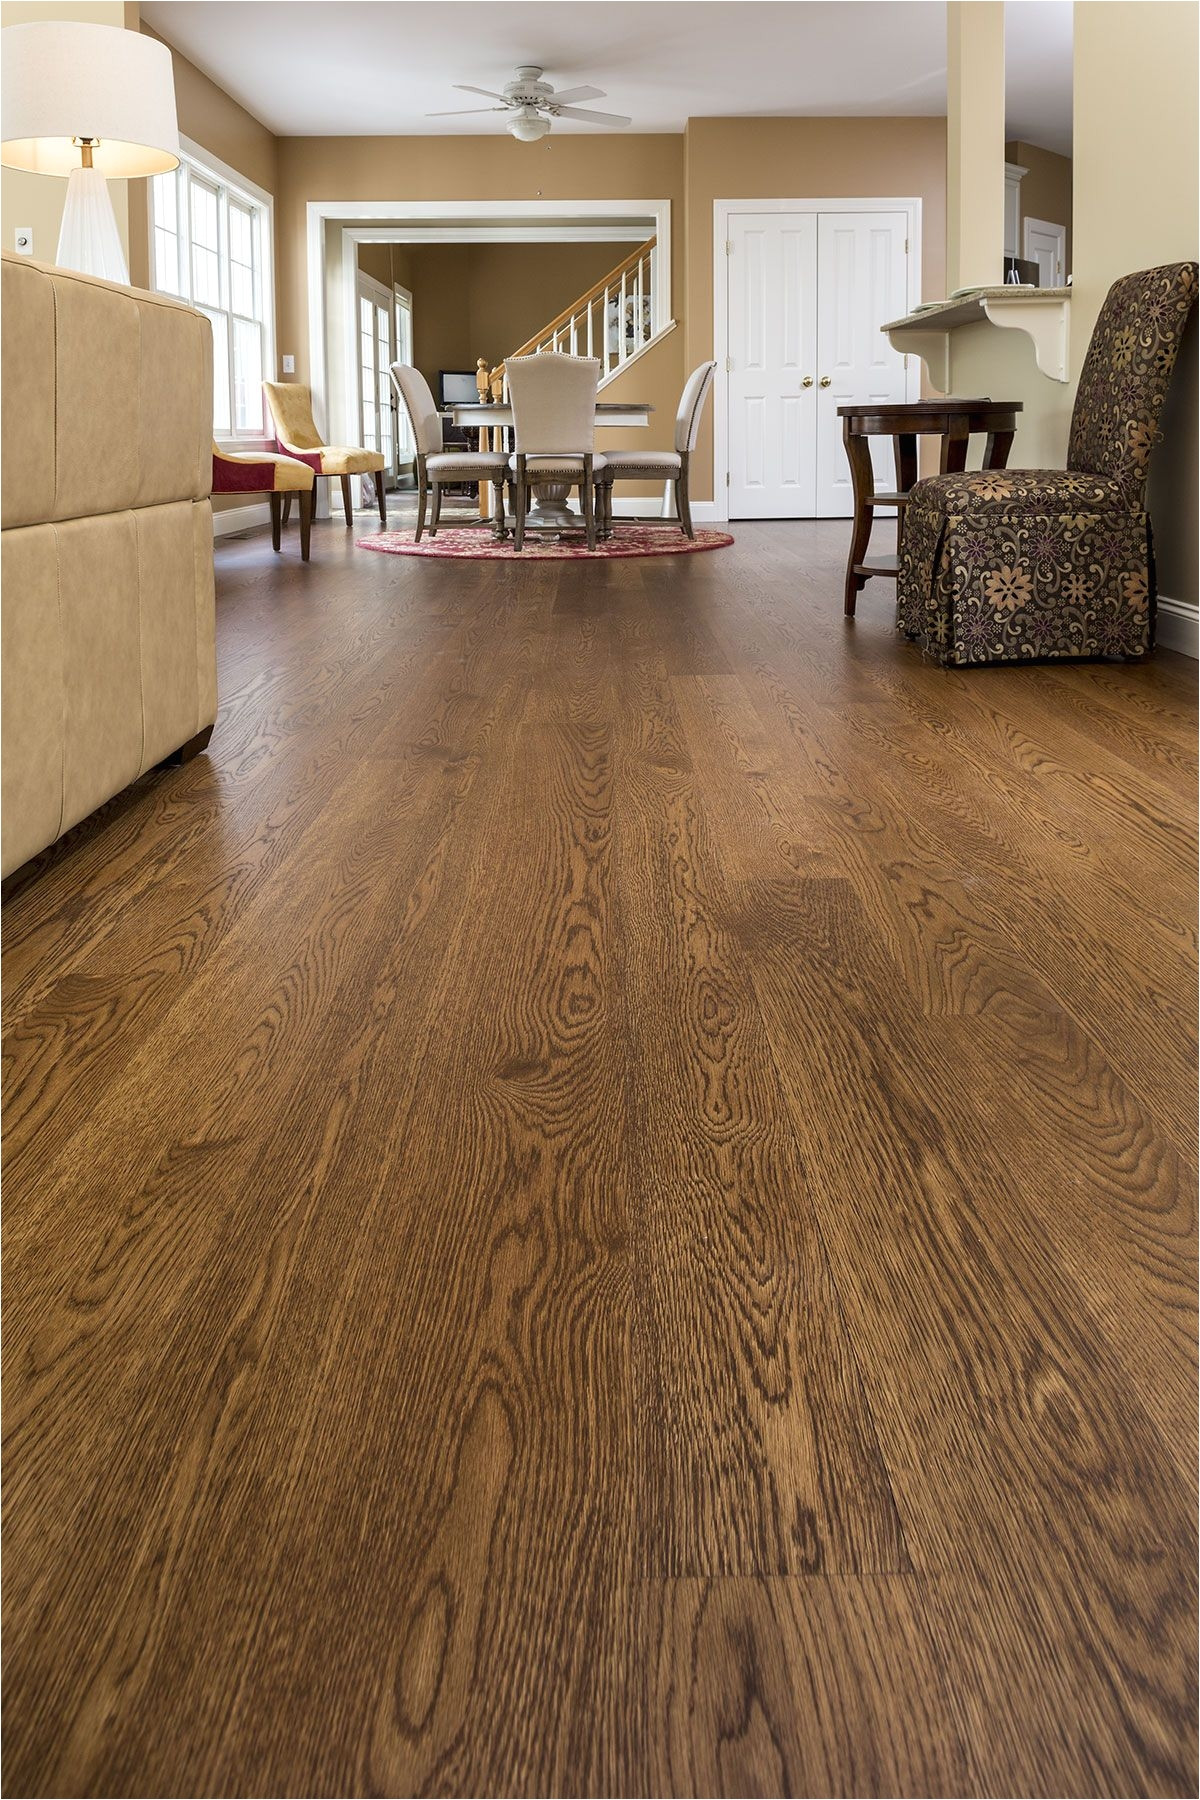 16 attractive Images Of Bedrooms with Hardwood Floors 2021 free download images of bedrooms with hardwood floors of cheap hardwood flooring nashville tn wide plank white oak finished with regard to cheap hardwood flooring nashville tn wide plank white oak finishe